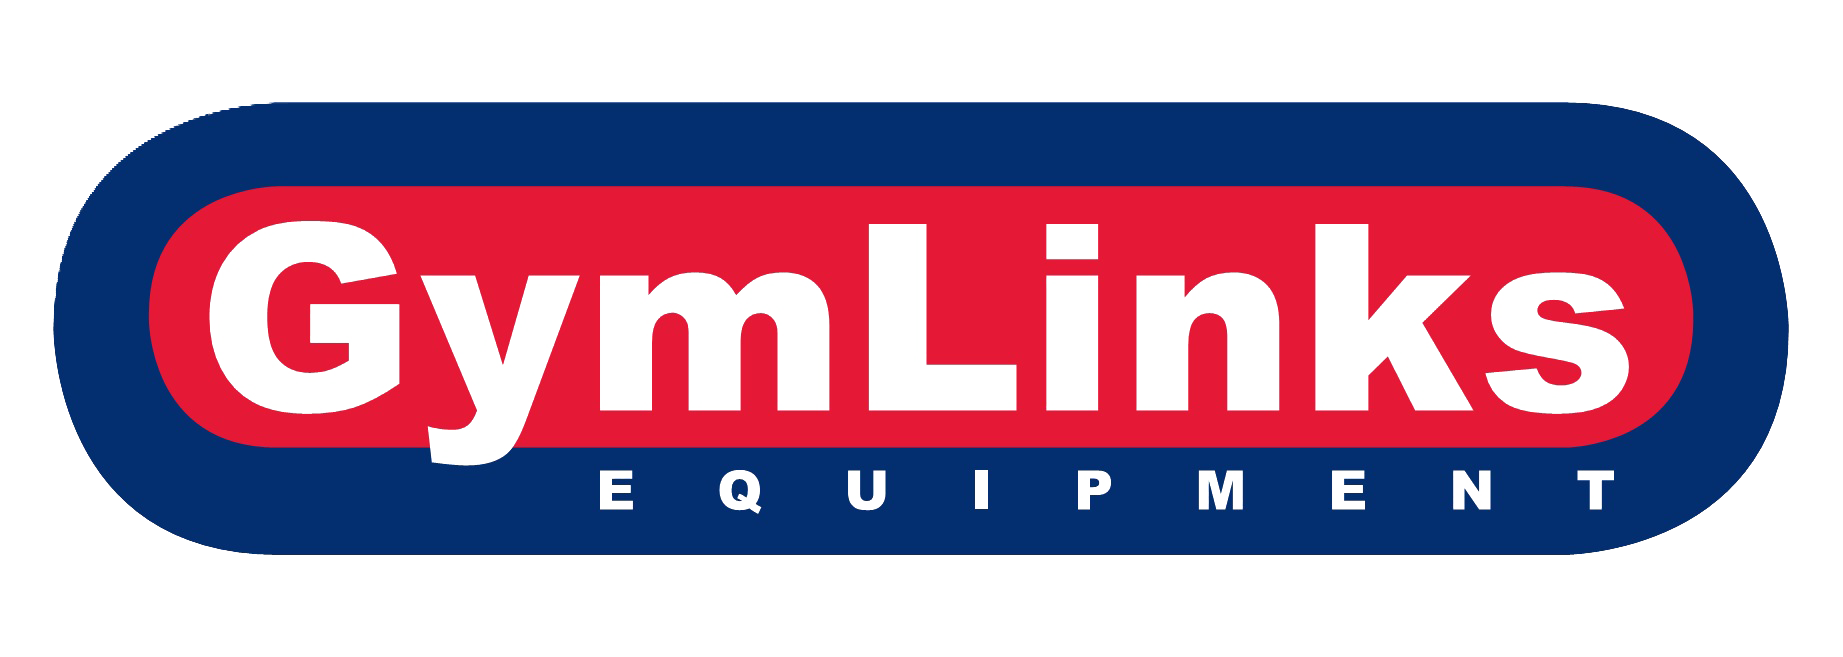 GymLinks Equipment